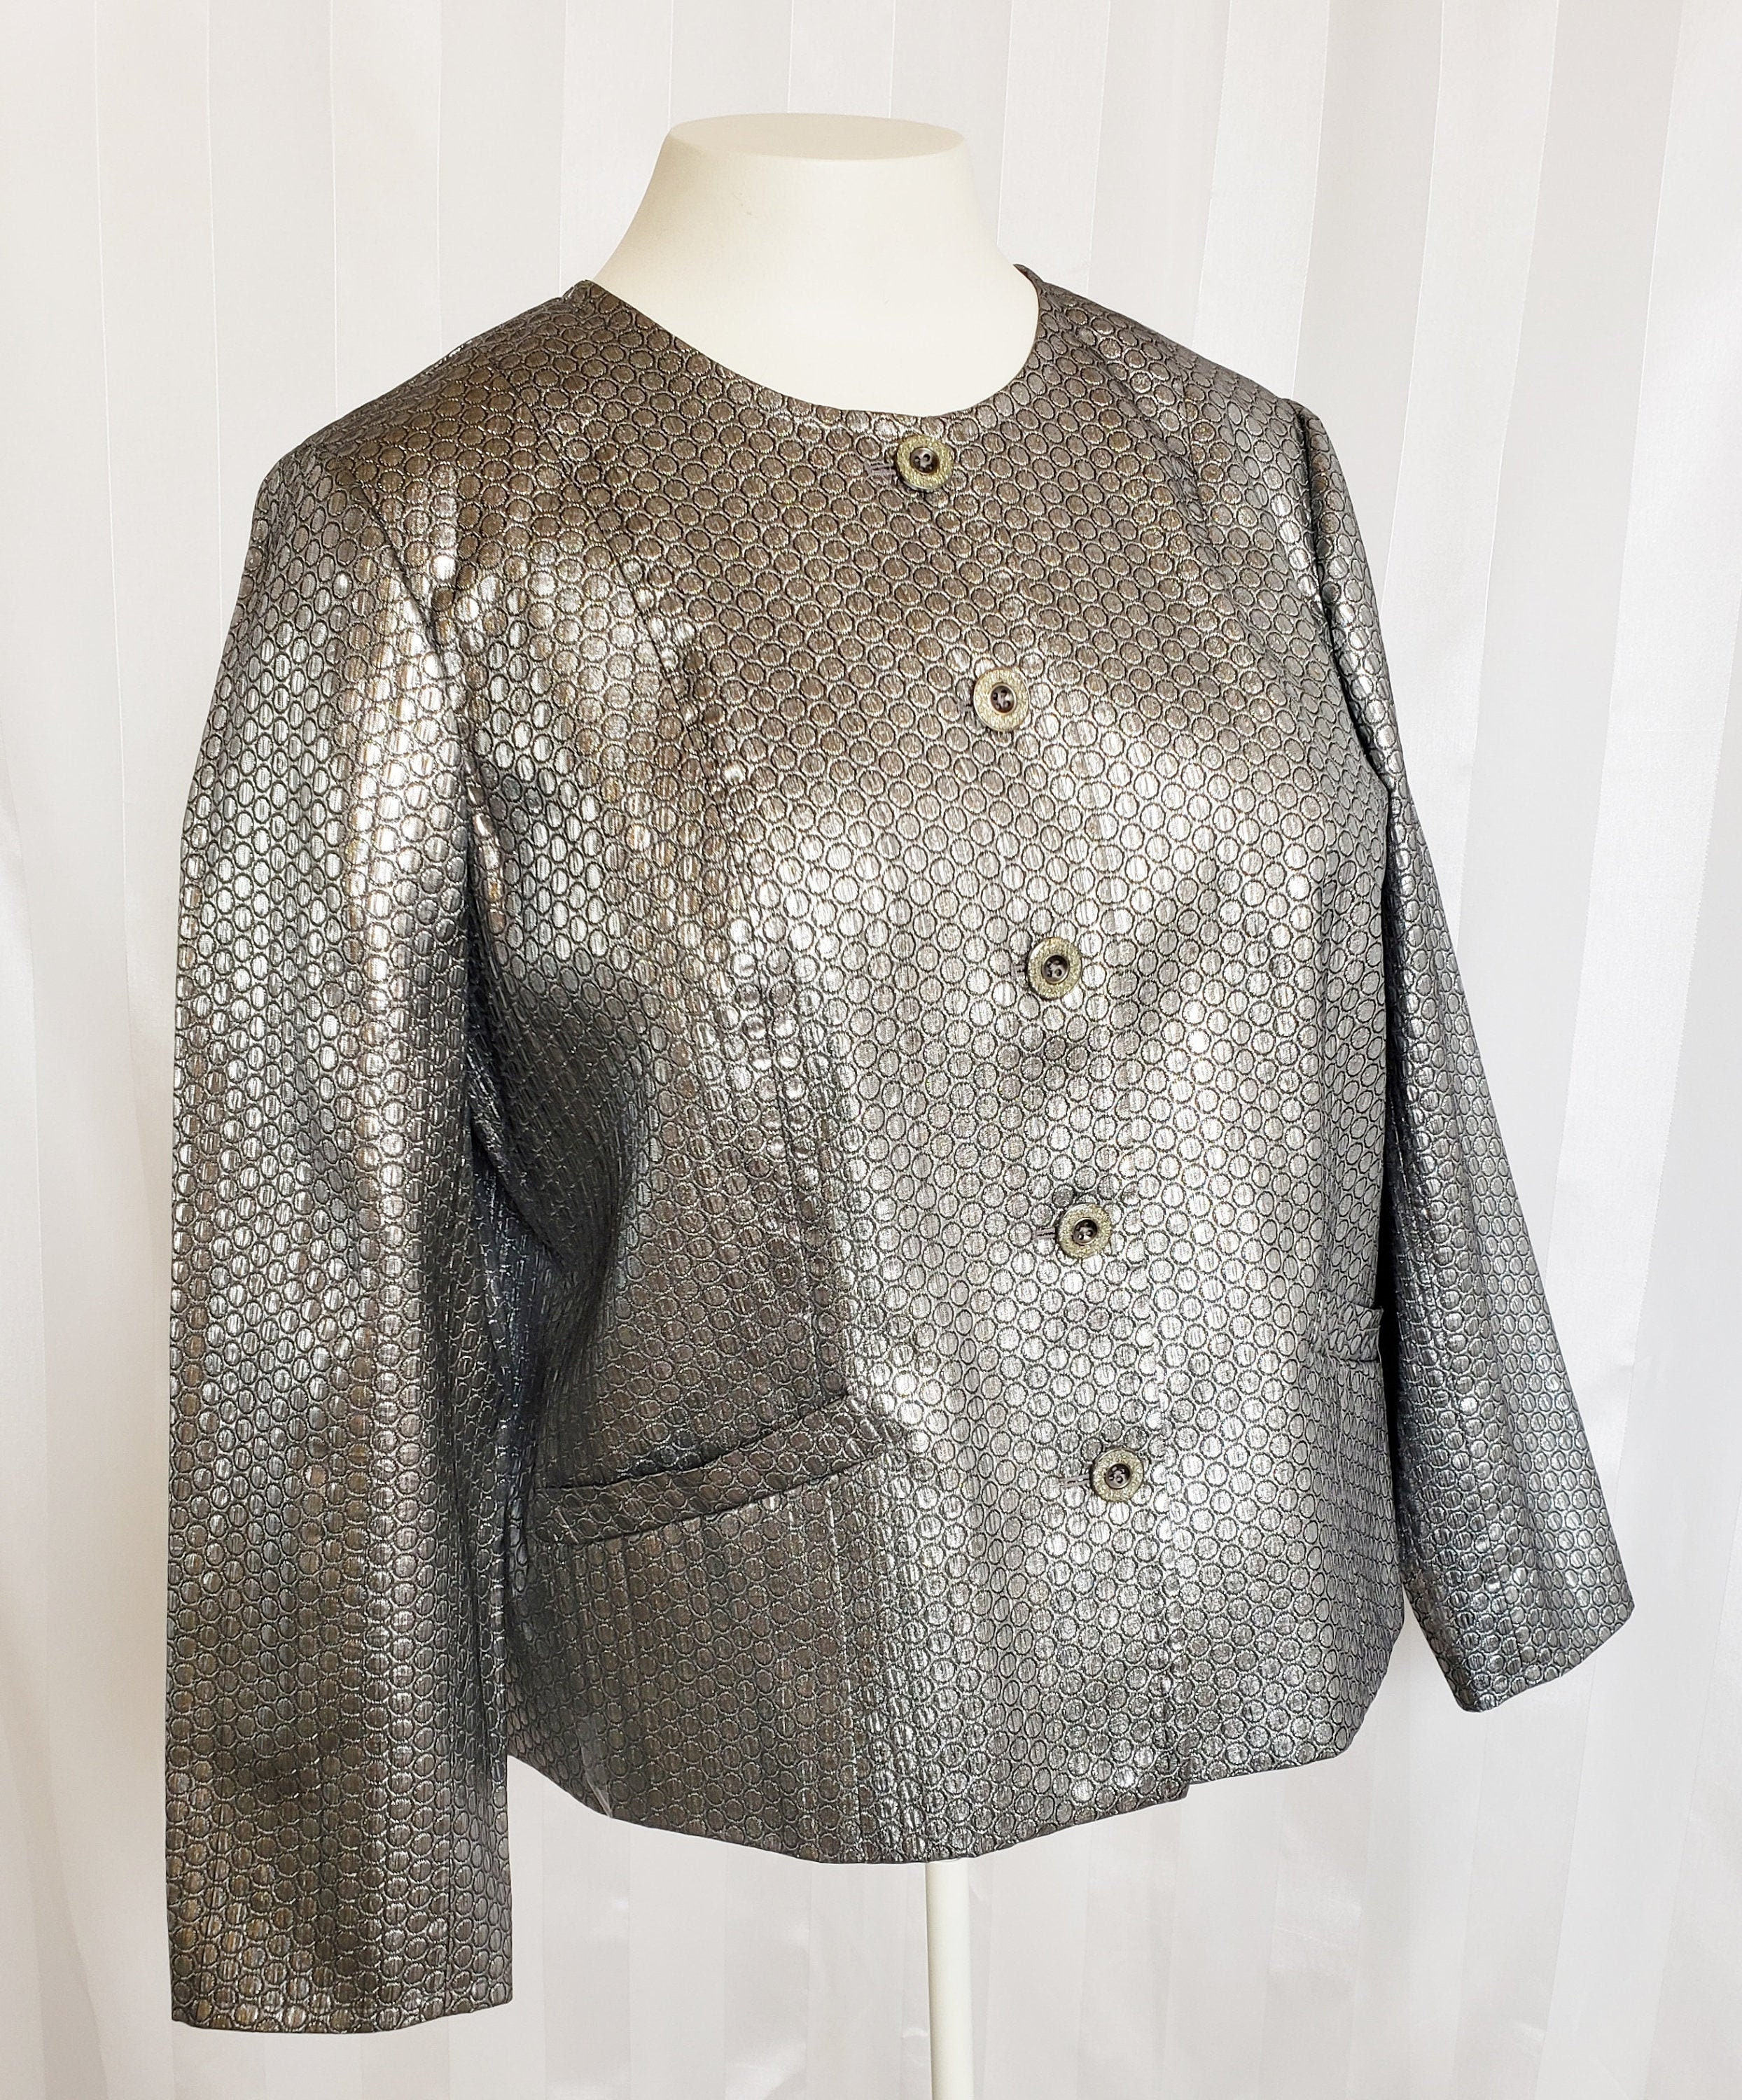 60s -70s Jewelry – Necklaces, Earrings, Rings, Bracelets Laura Ashley Silver Gray Jacket, Size Xl $72.00 AT vintagedancer.com